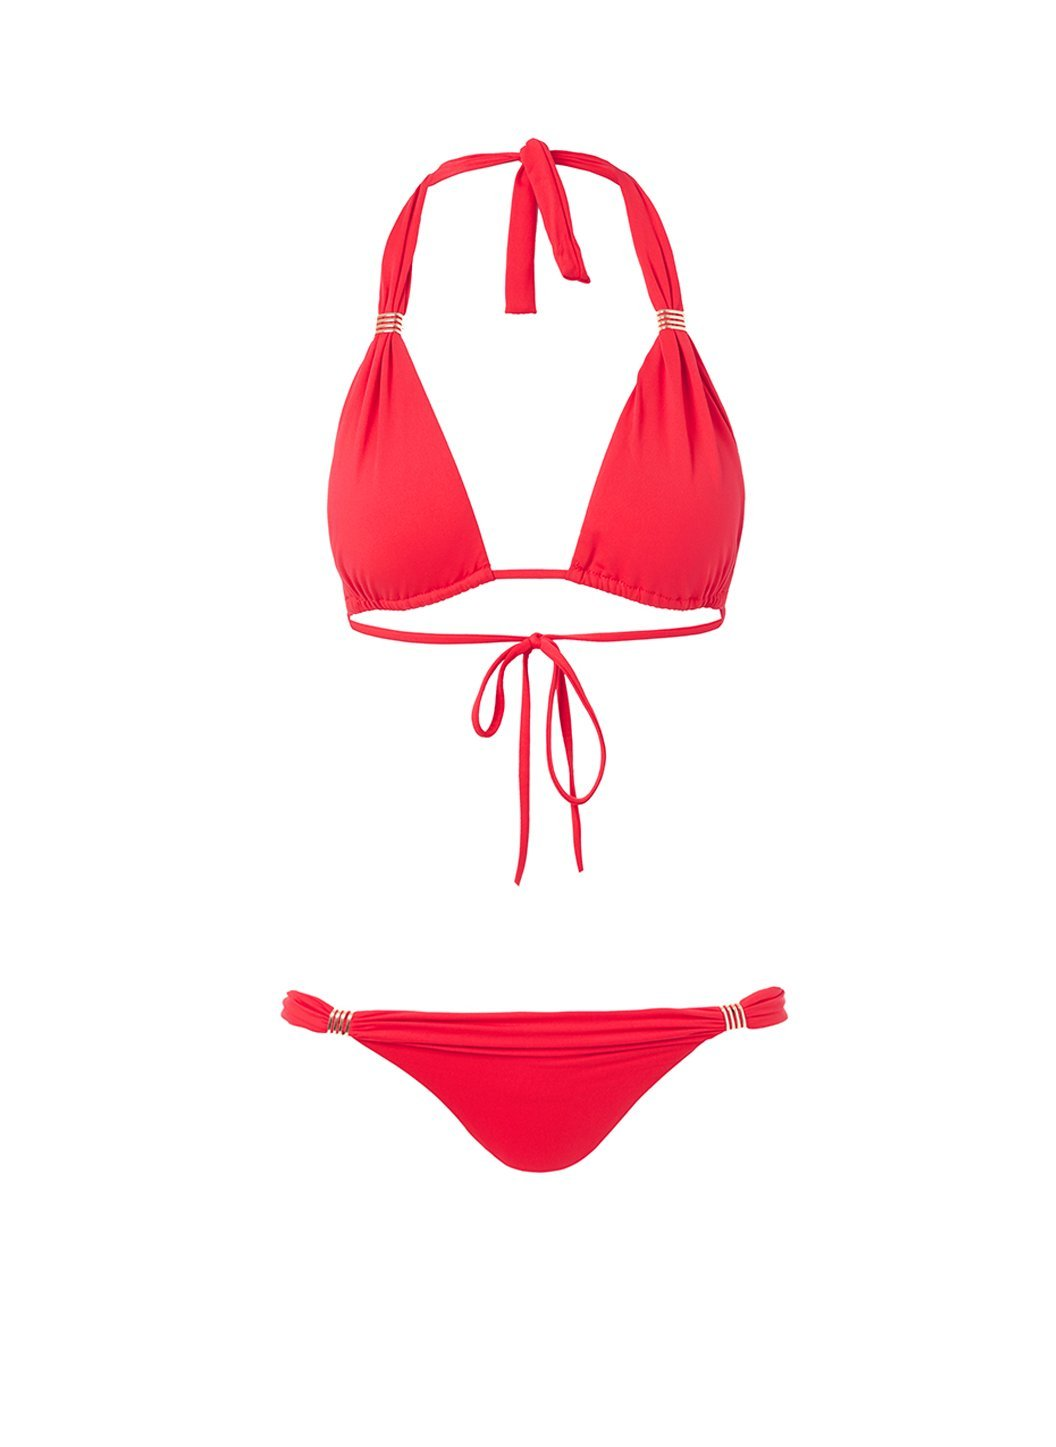 grenada red adjustable halterneck bikini 2019